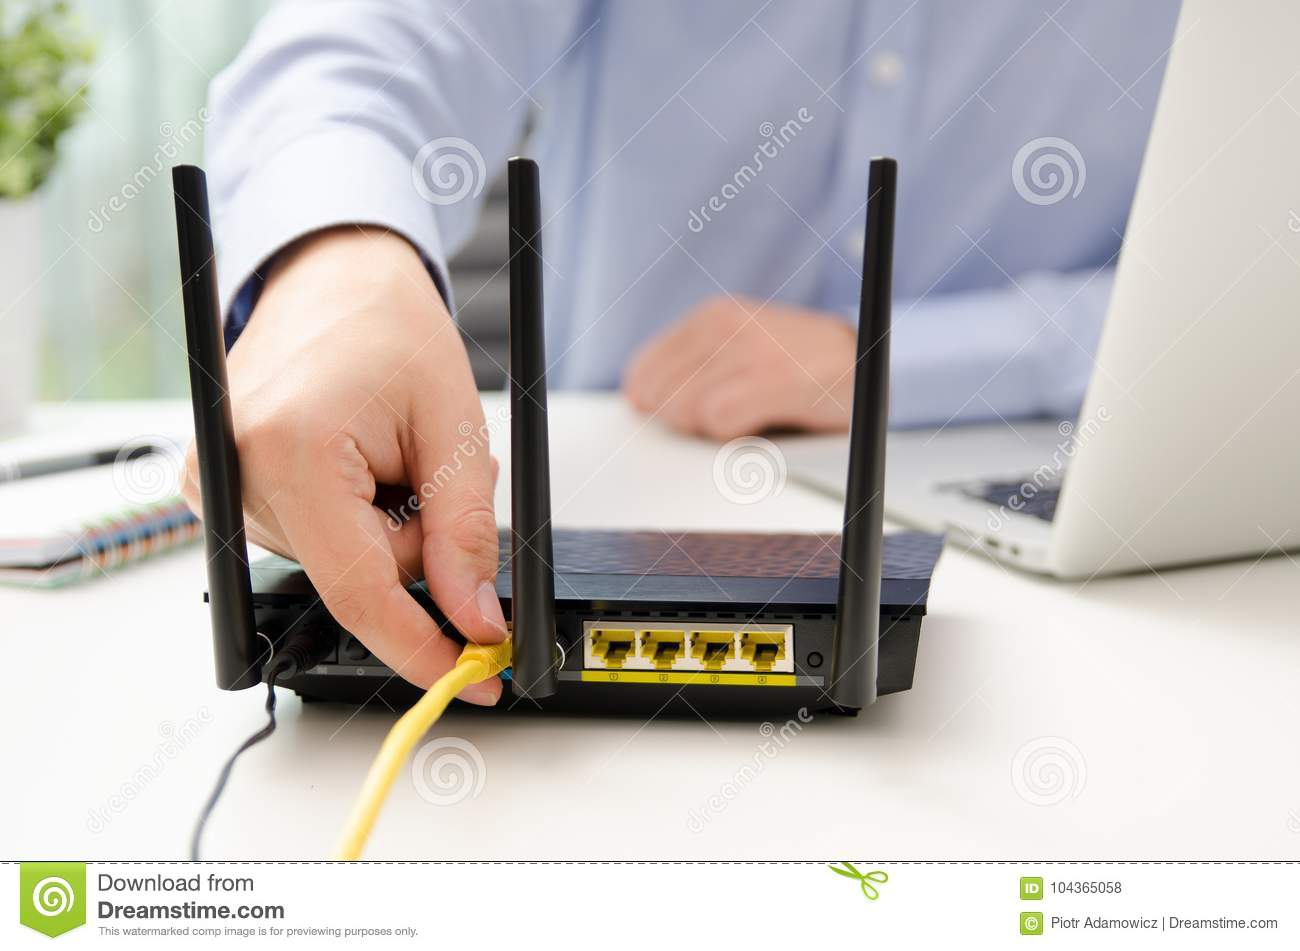 Miraculous Man Plugs Ethernet Cable Into Router Stock Photo Image Of Laptop Wiring Cloud Intapioscosaoduqqnet